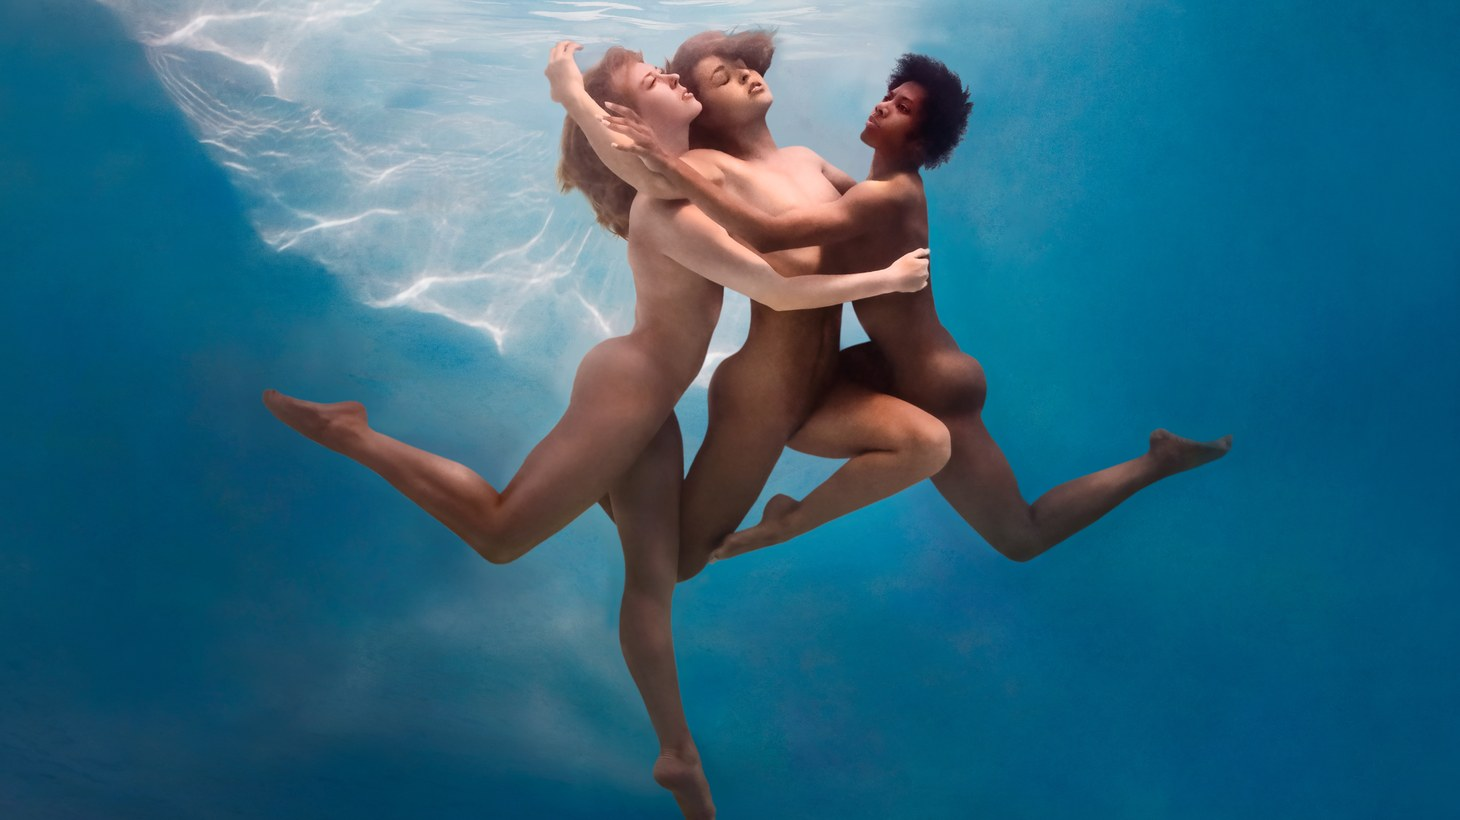 The cover of the current issue of Playboy Magazine was shot by a gay photographer, Ed Freeman. Executive editor Shane Michael Singh told the New York Times that the water symbolizes gender and sexual fluidity. The women pictured are all activists.